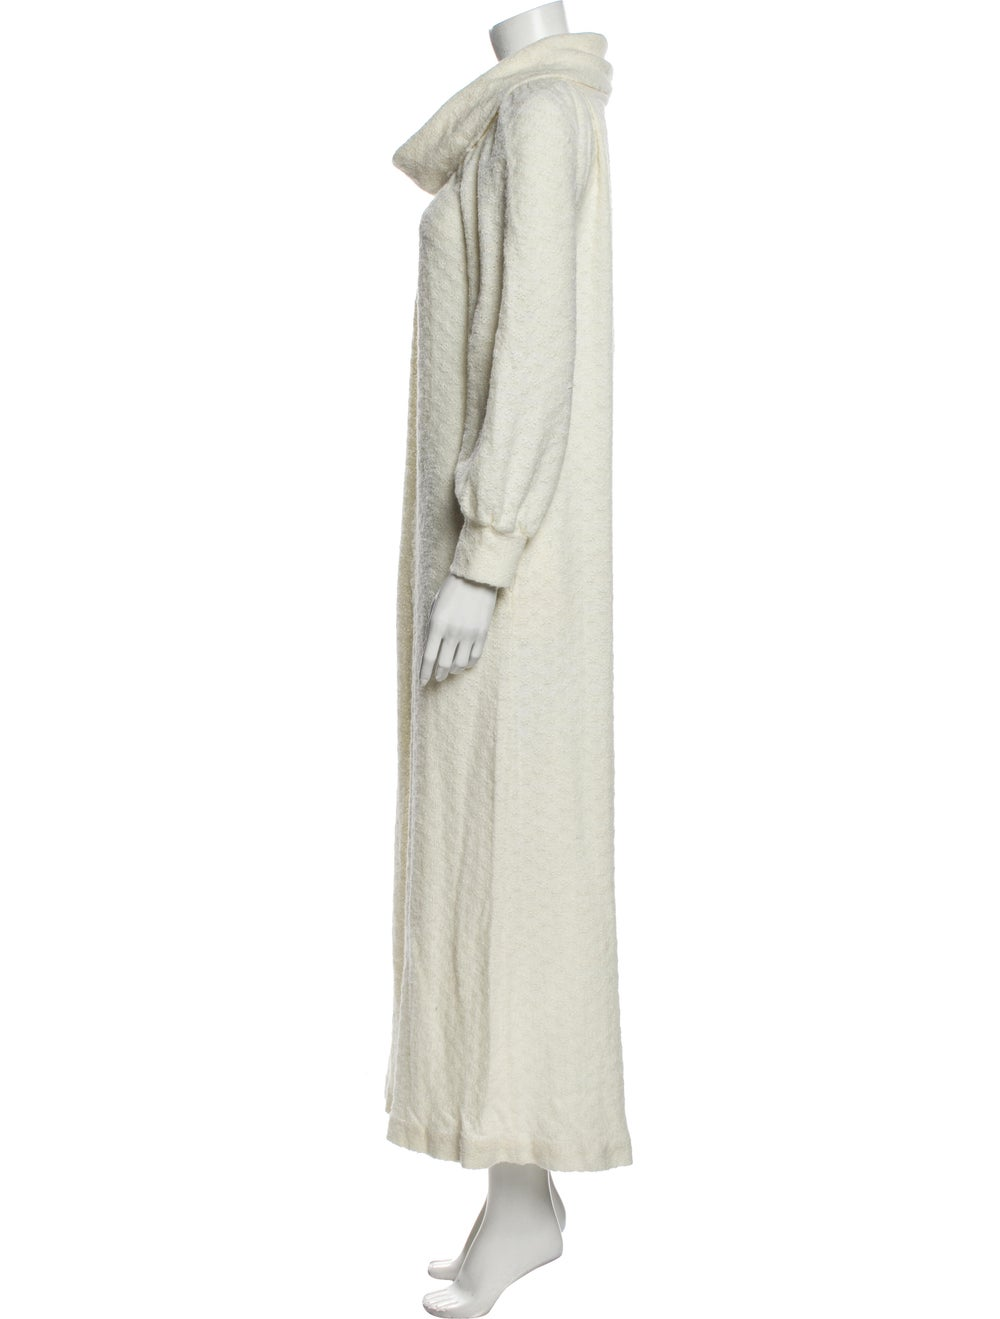 Christian Dior Vintage Nightgown - image 2